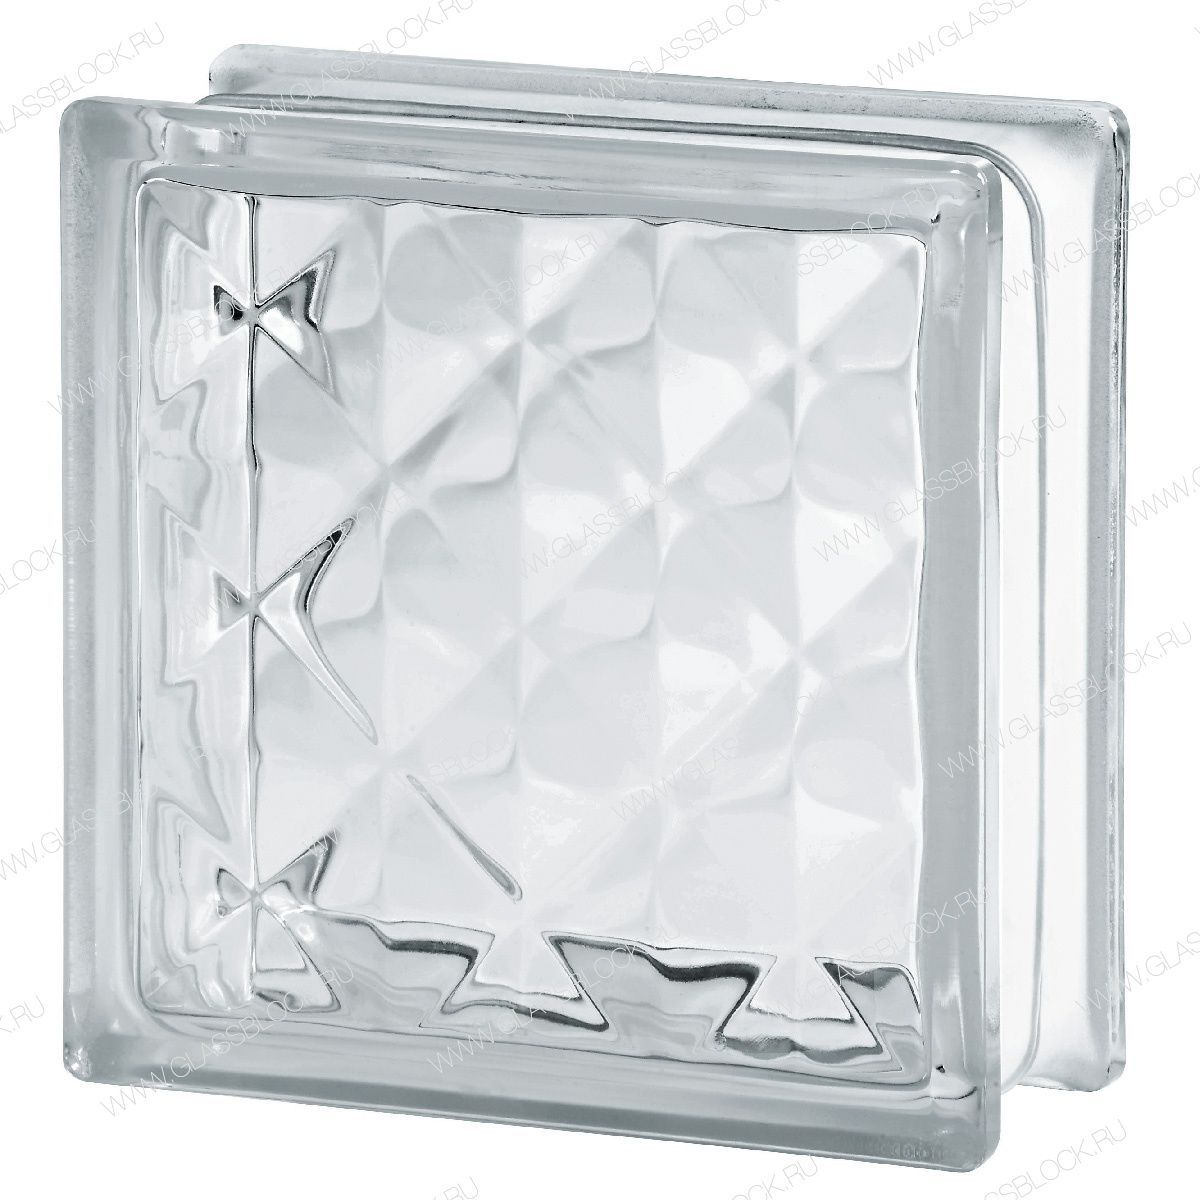 Square Glass Brick Basic Clear 1919 8 Pyramid Seves Glassblock Embossed Wall Mounted High Light Transmission